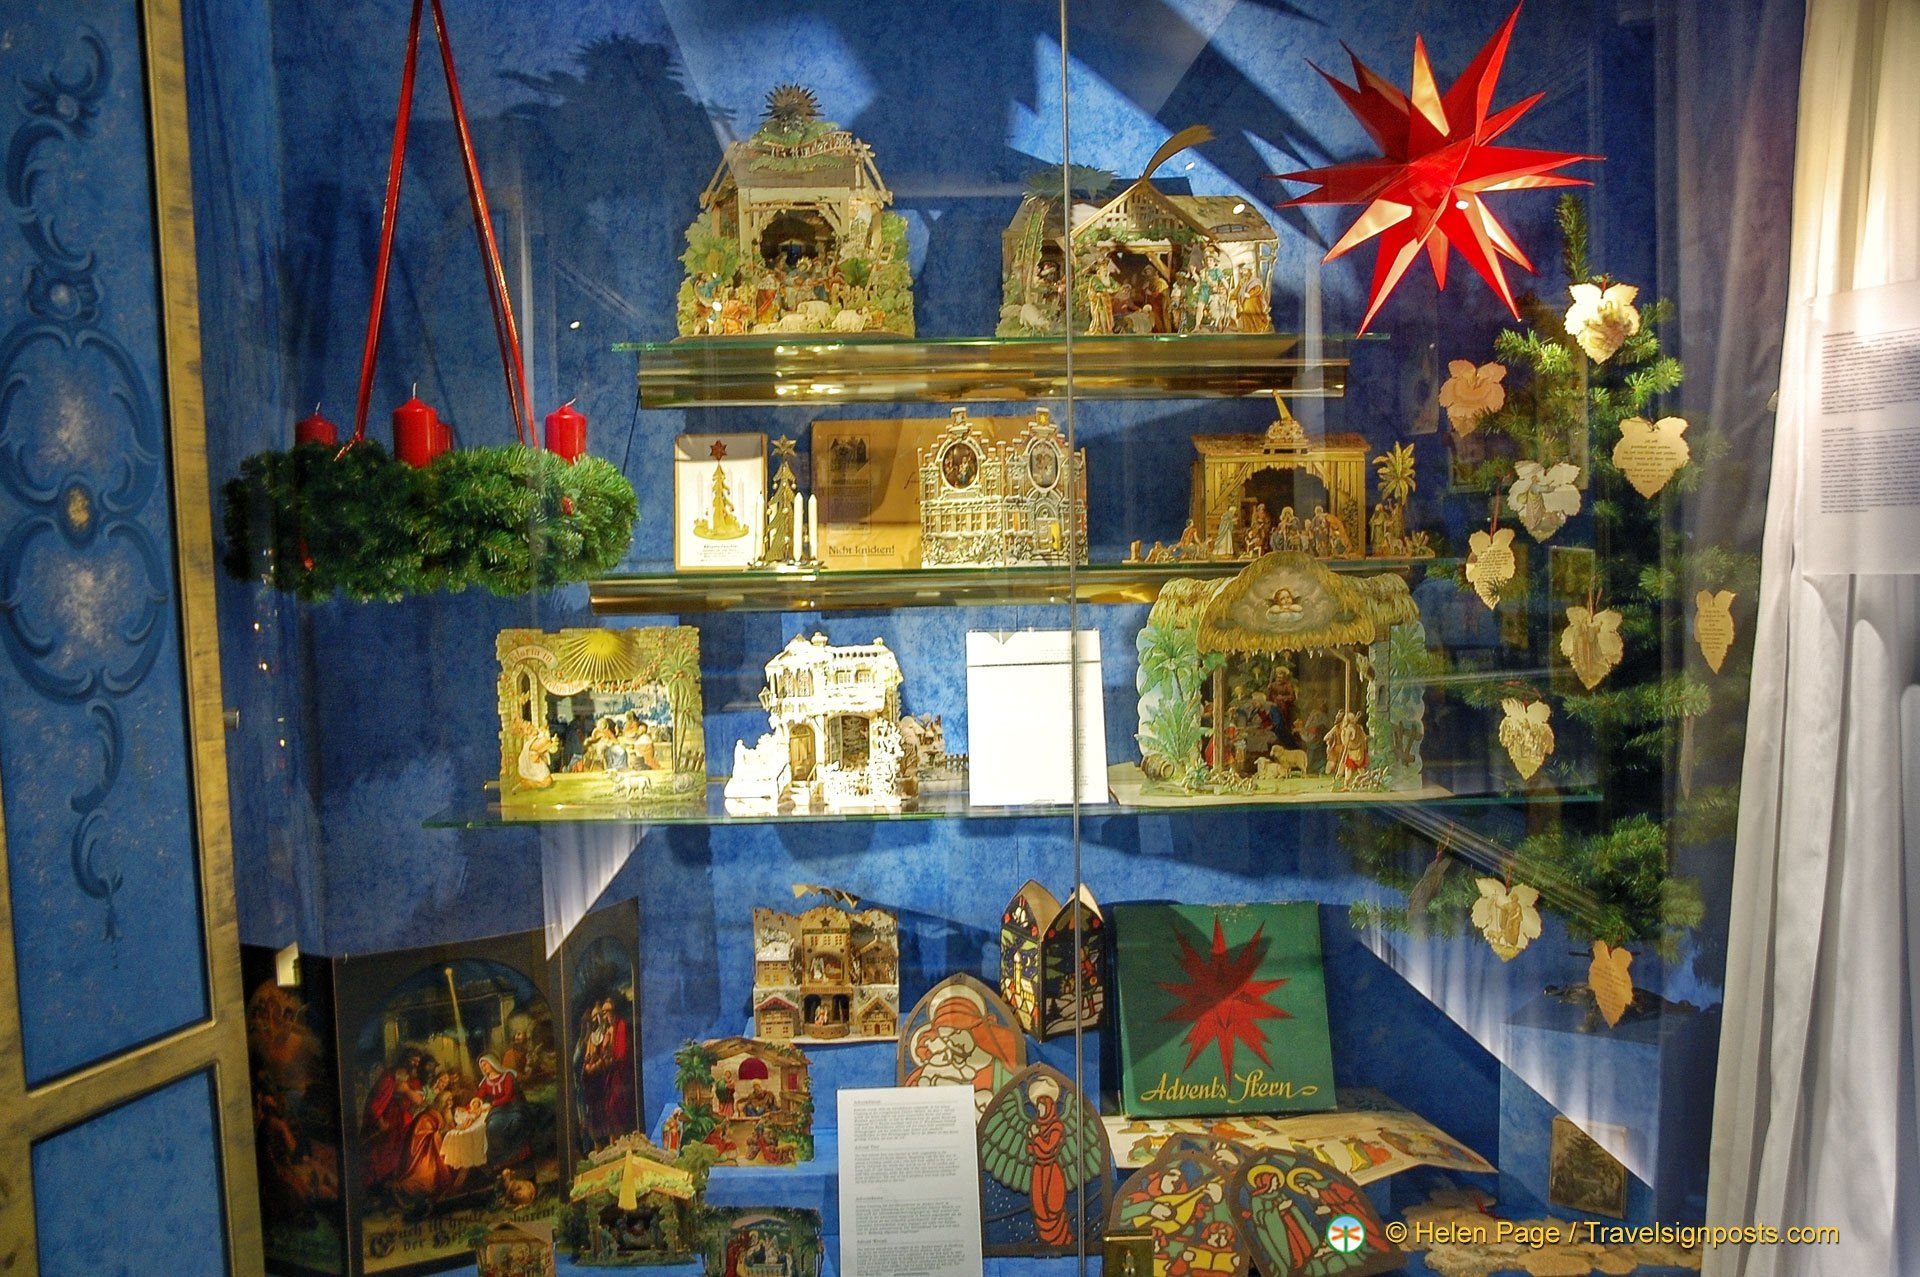 The evolution of nativity scenes at the Deutsches Weihnachtsmuseum in Rothenburg ob der Tauber